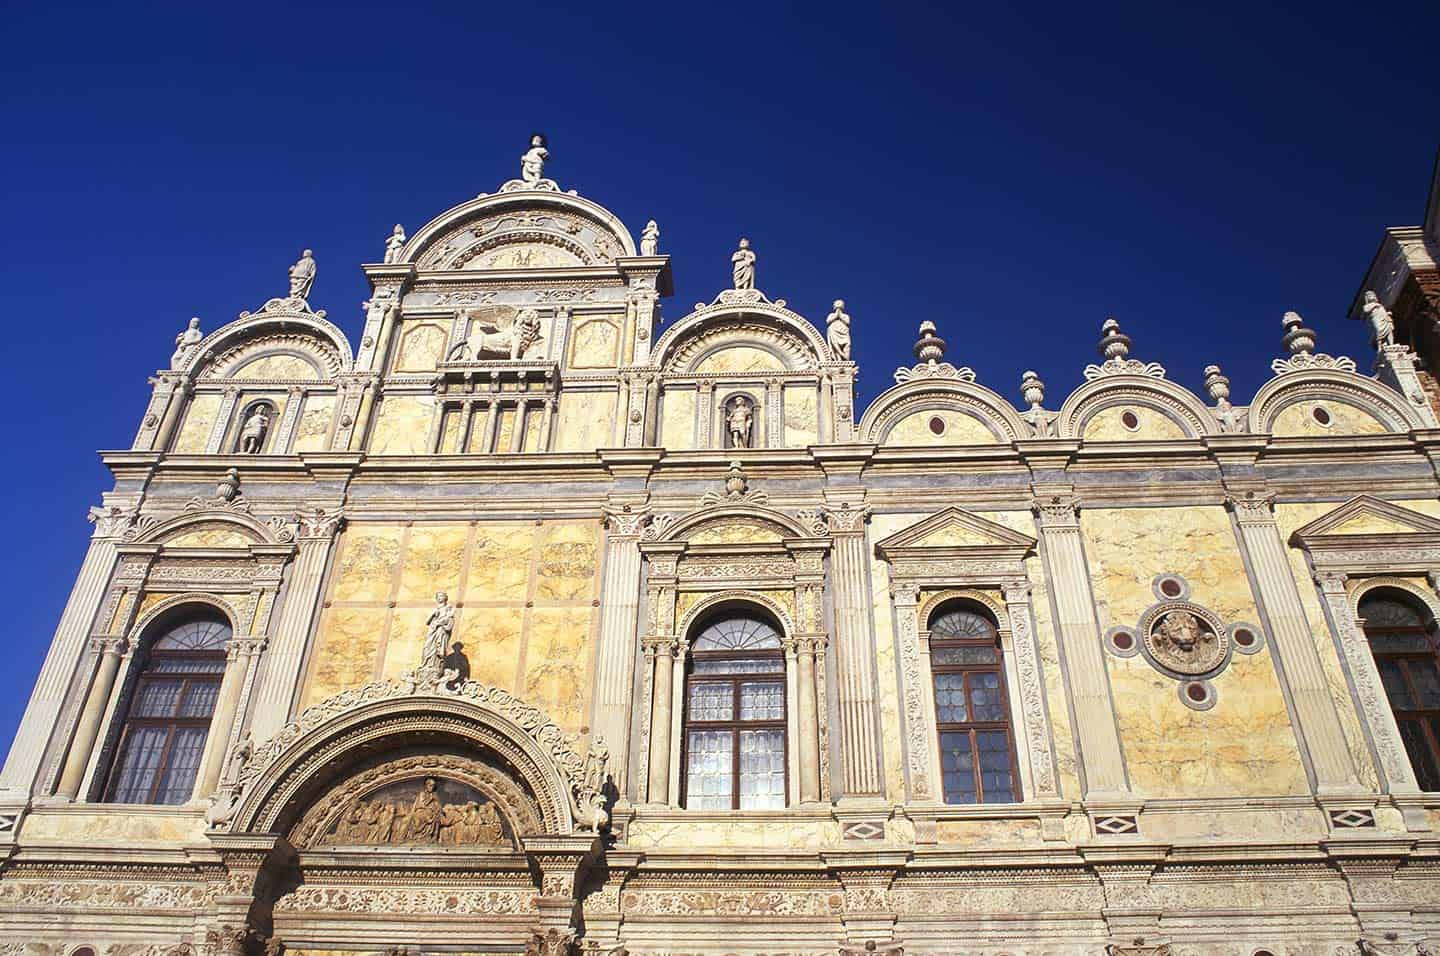 Image of the facade of Venice's hospital, formerly the Scuola Grande di San Marco